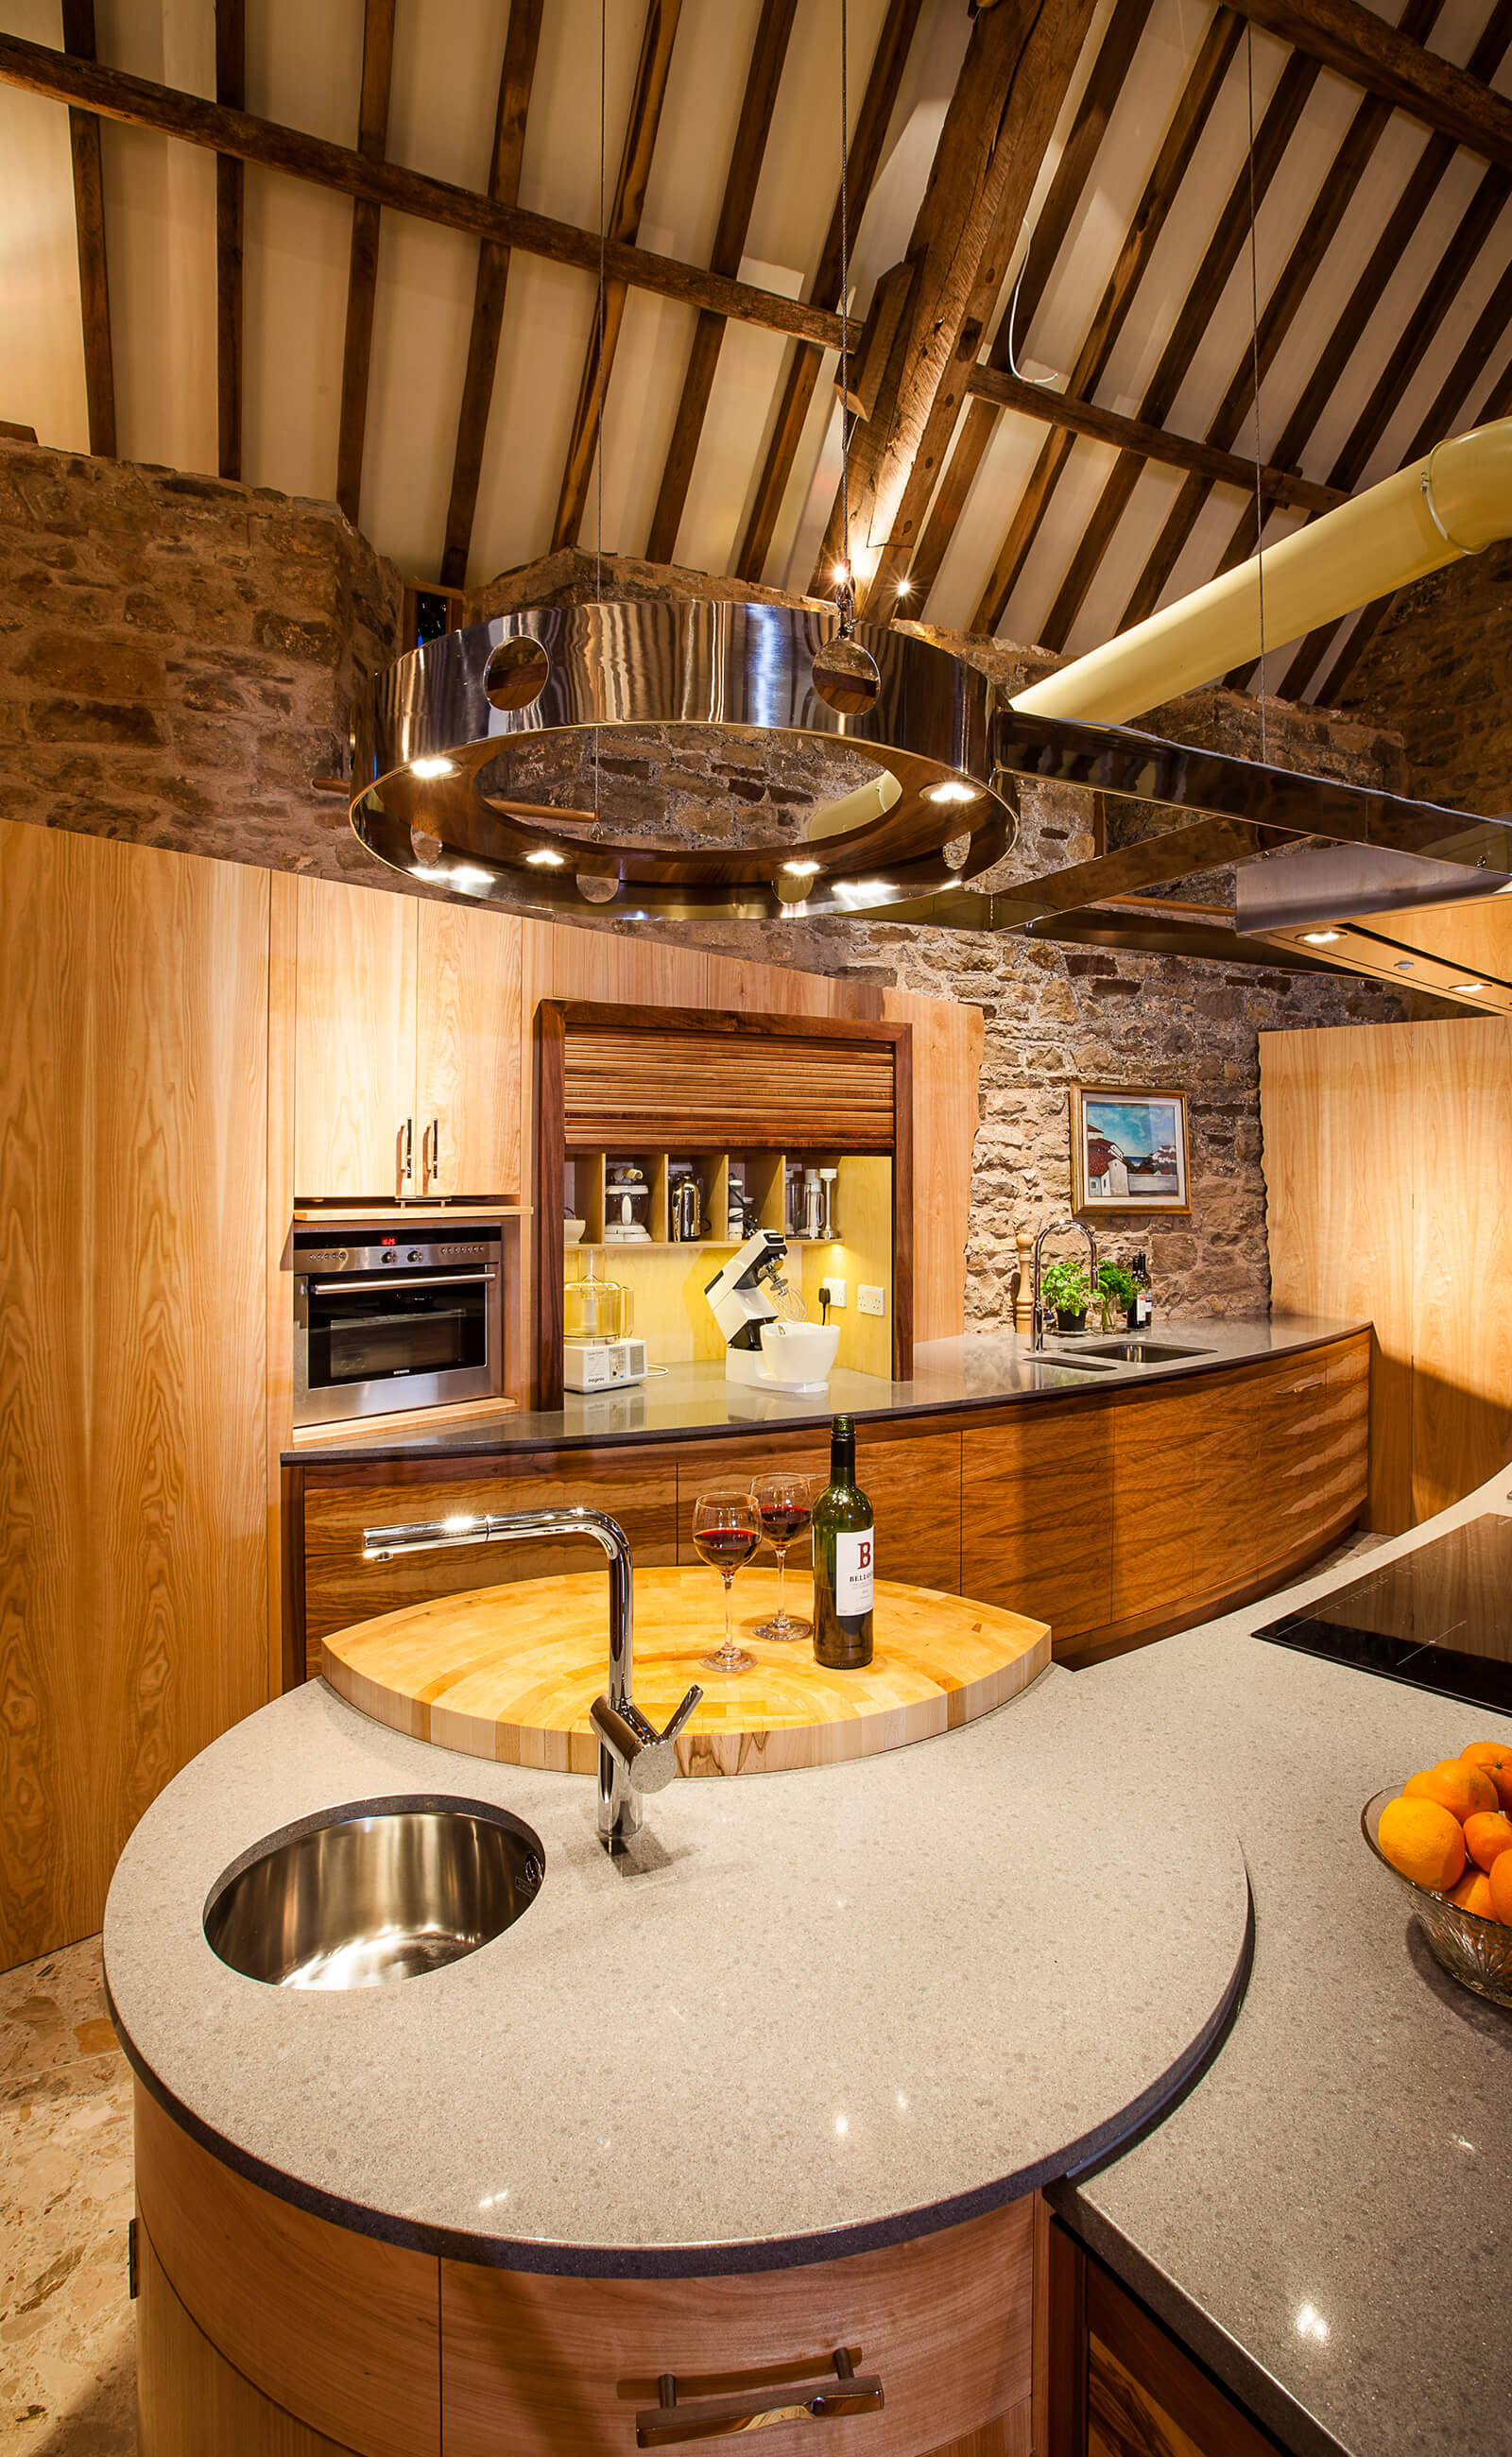 Curved kitchen design in barn restoration